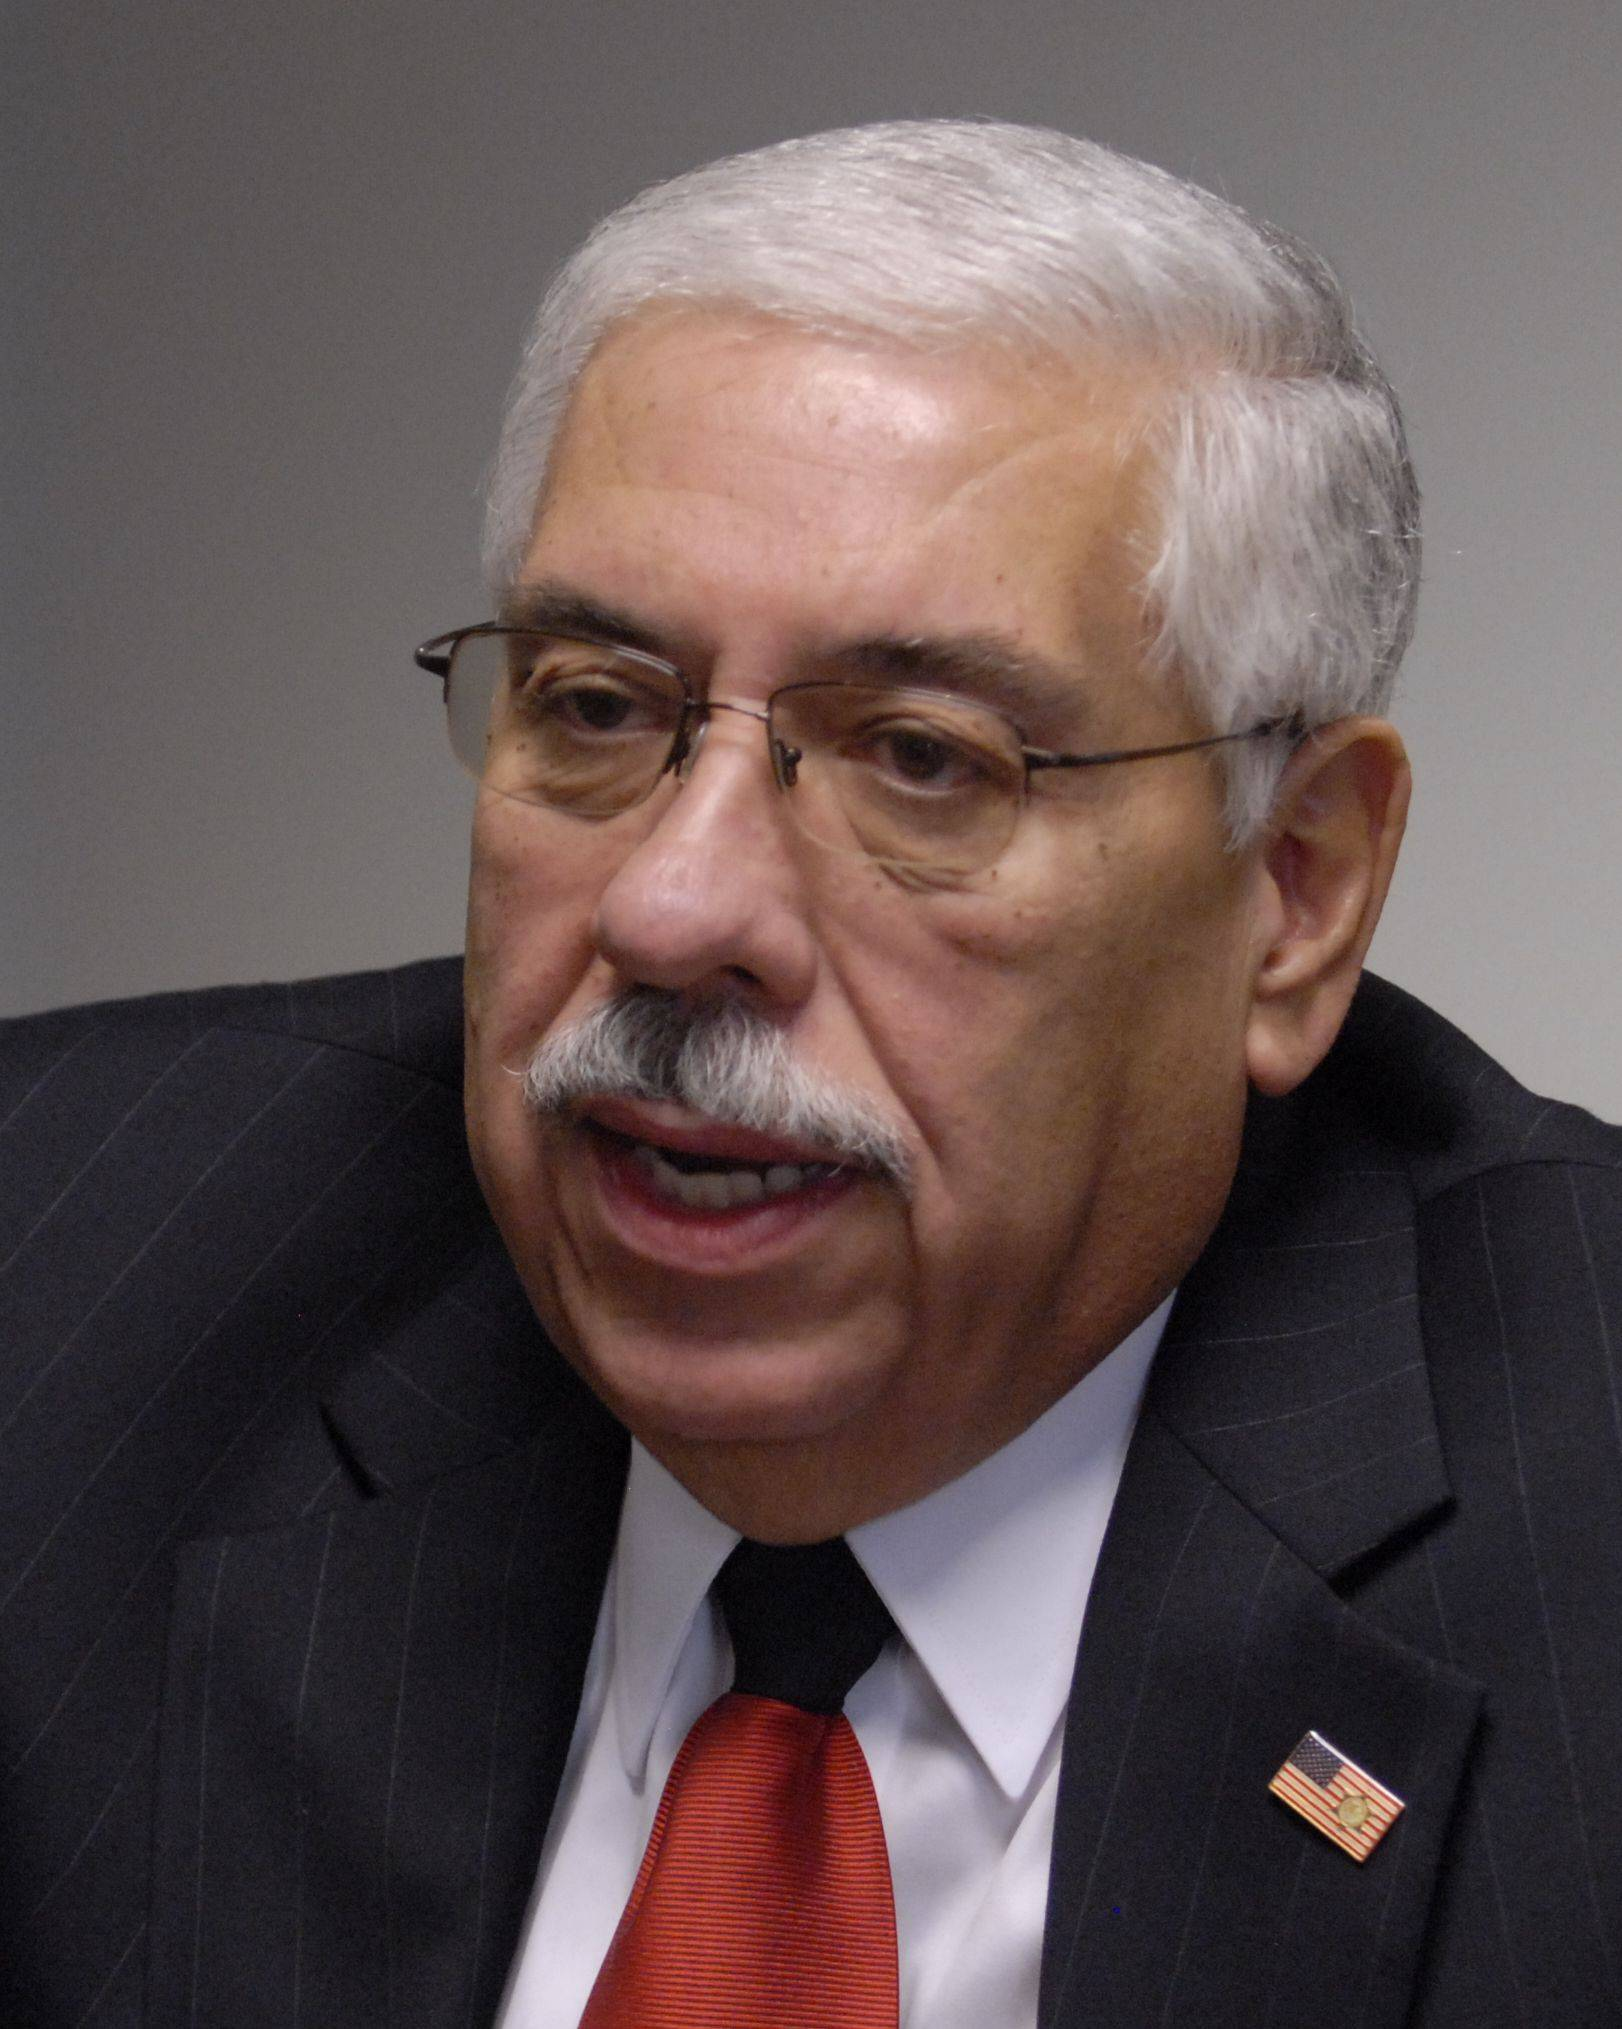 Cook County Assessor Berrios denies wrongdoing